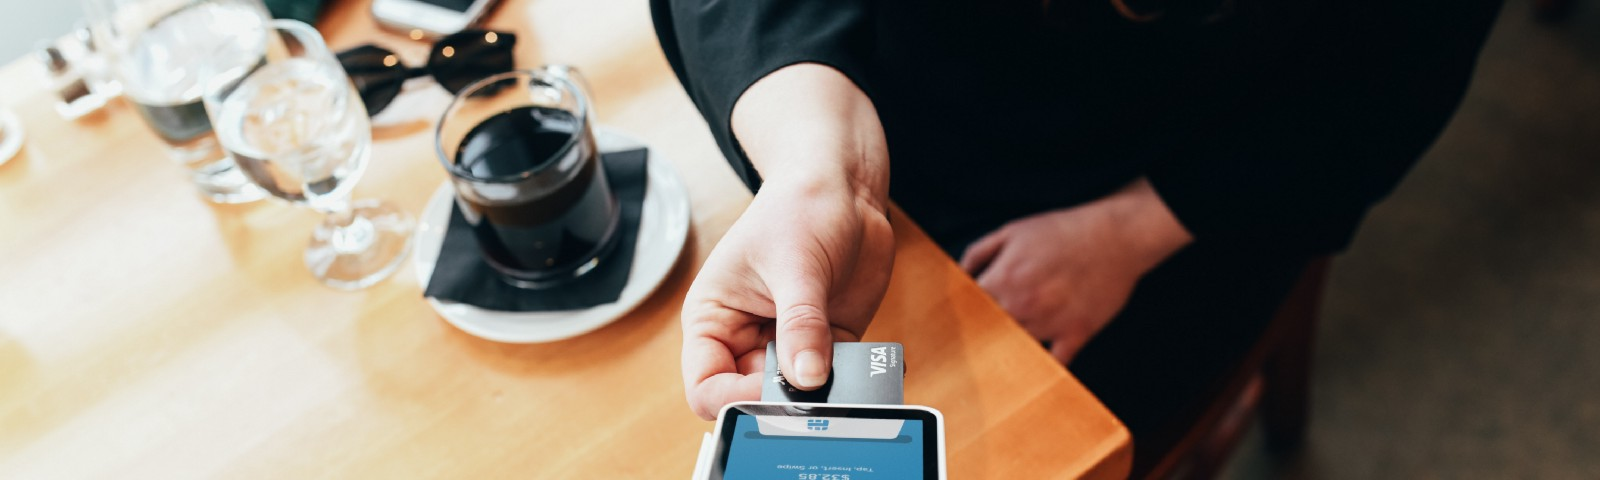 Customer using mobile payment tech in a coffee shop.